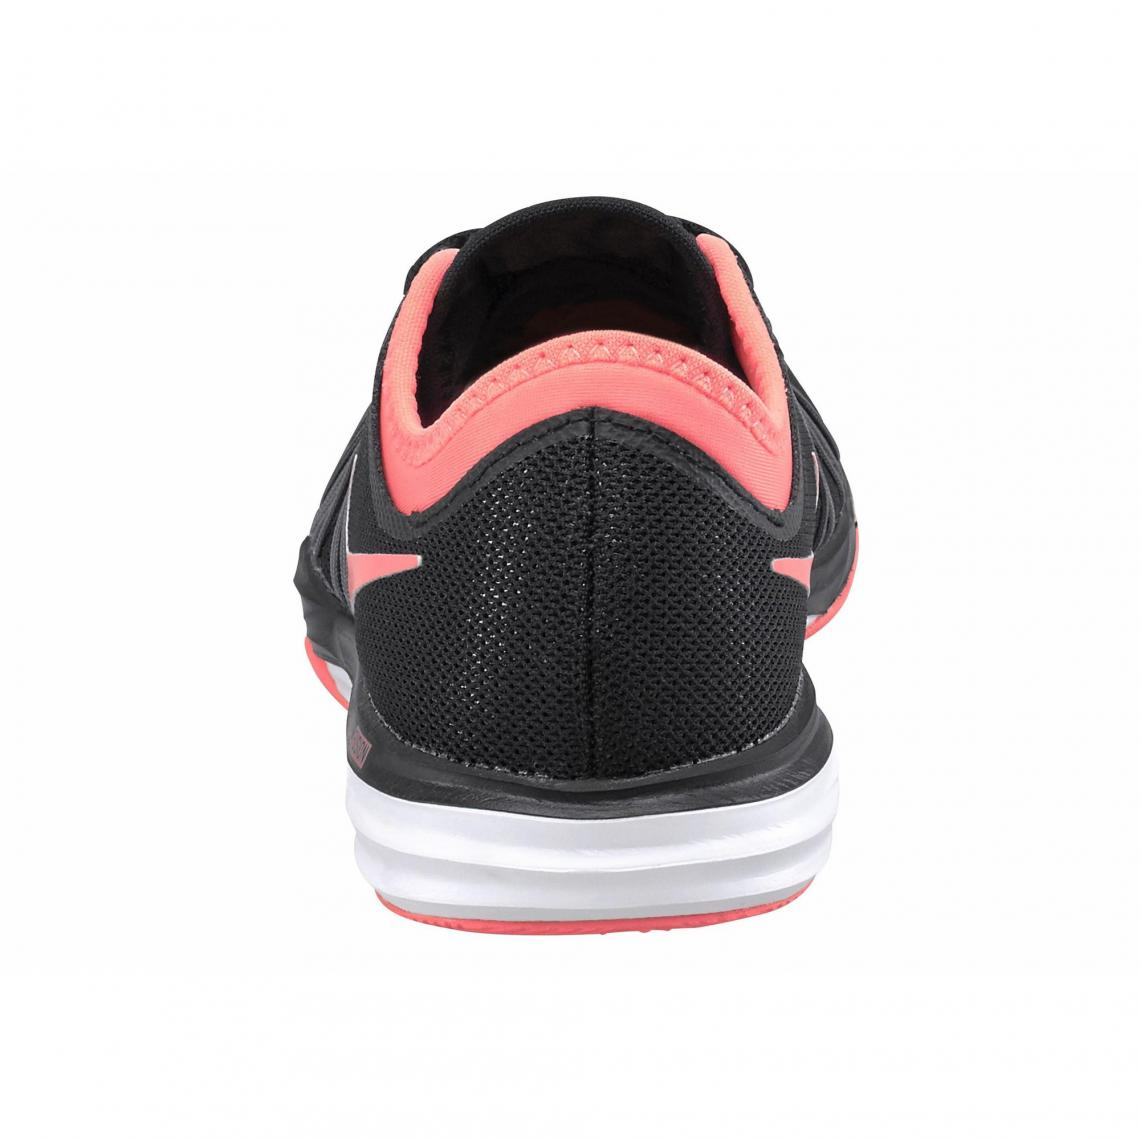 Chaussures de sport Nike Fitness Dual Fusion TR Hit Wmns